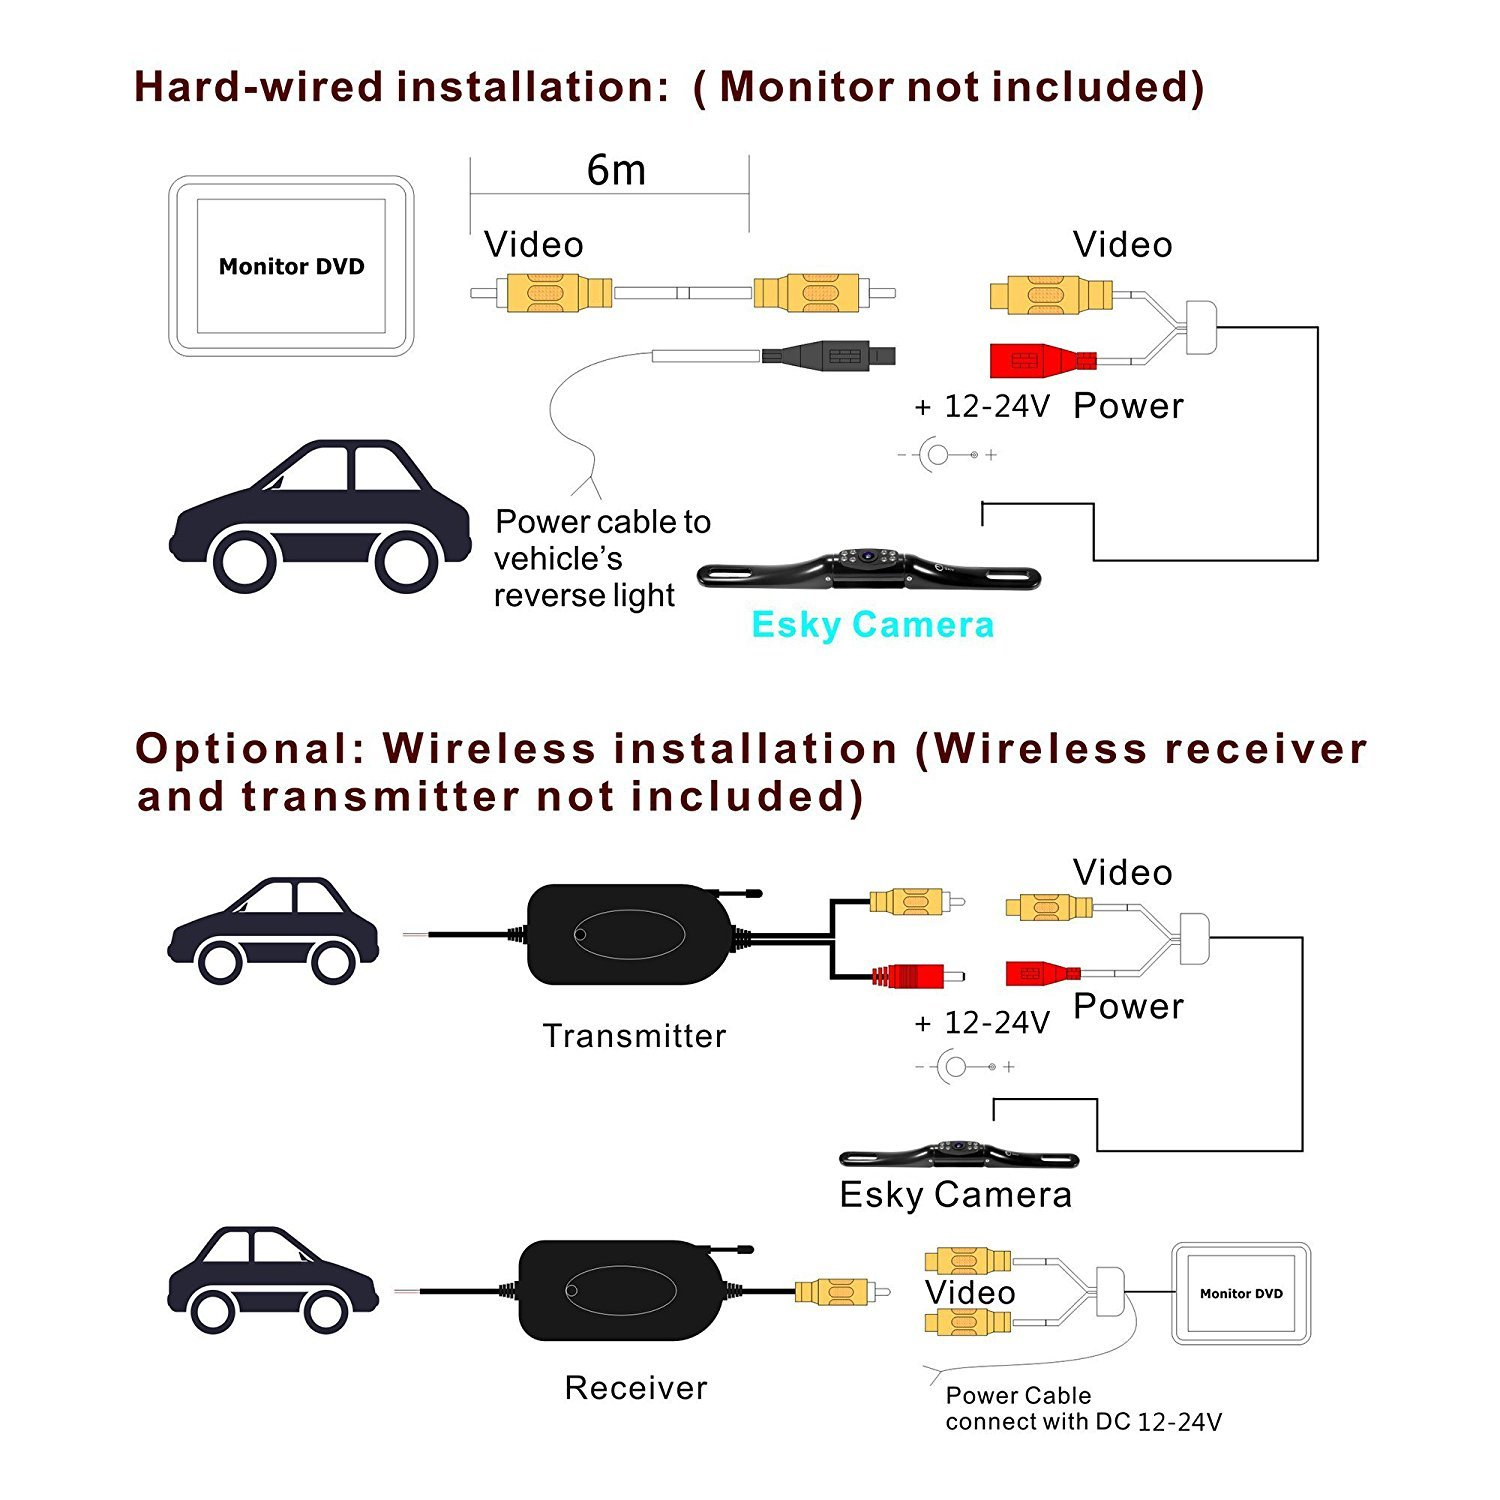 Peak Backup Camera Wiring Diagram | Manual E-Books - Peak Backup Camera Wiring Diagram